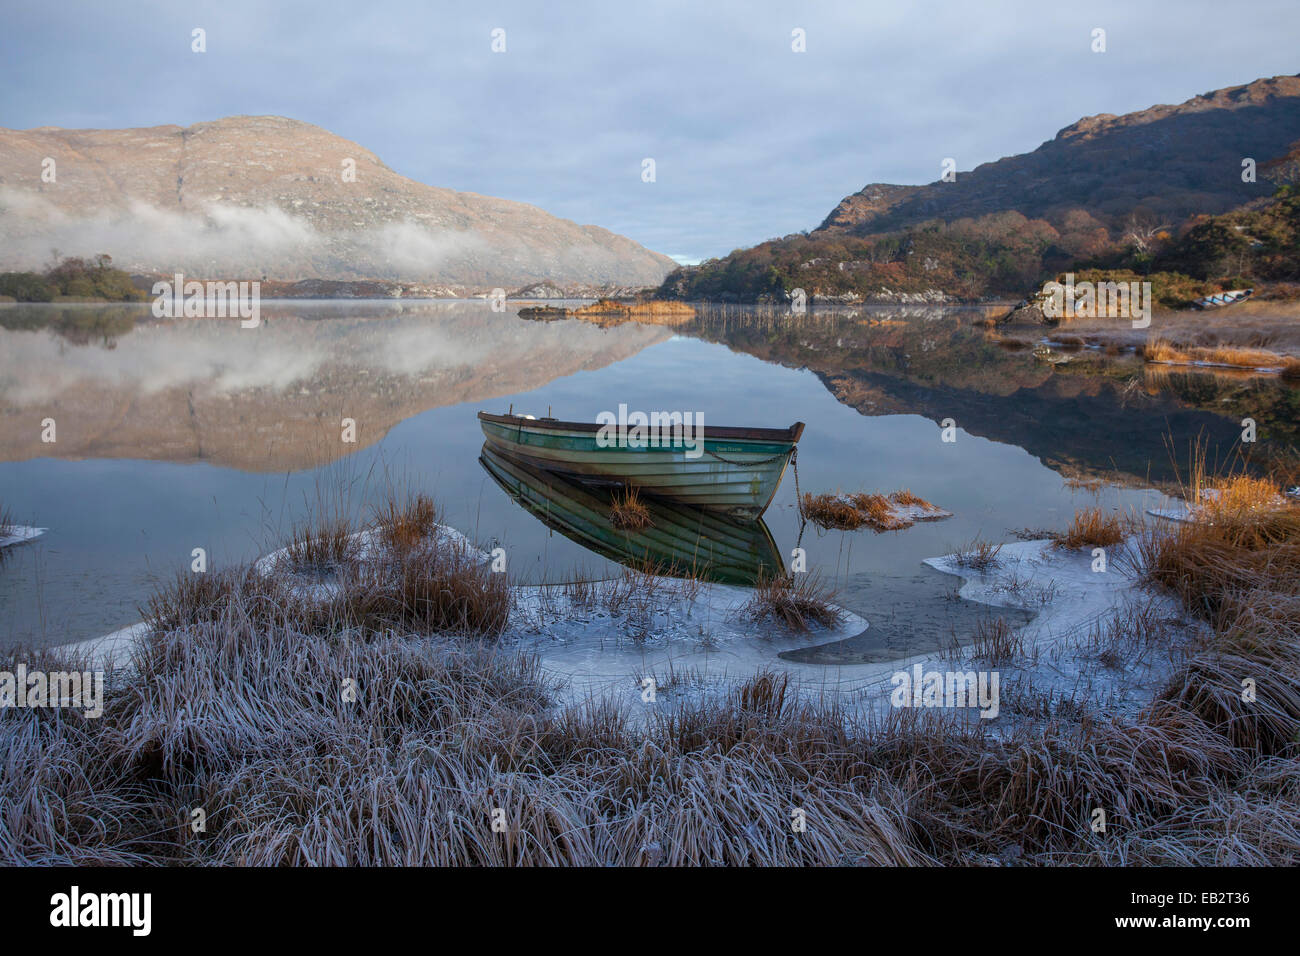 Frosty fishing boat on the shore of Upper Lake, Killarney National Park, County Kerry, Ireland. - Stock Image